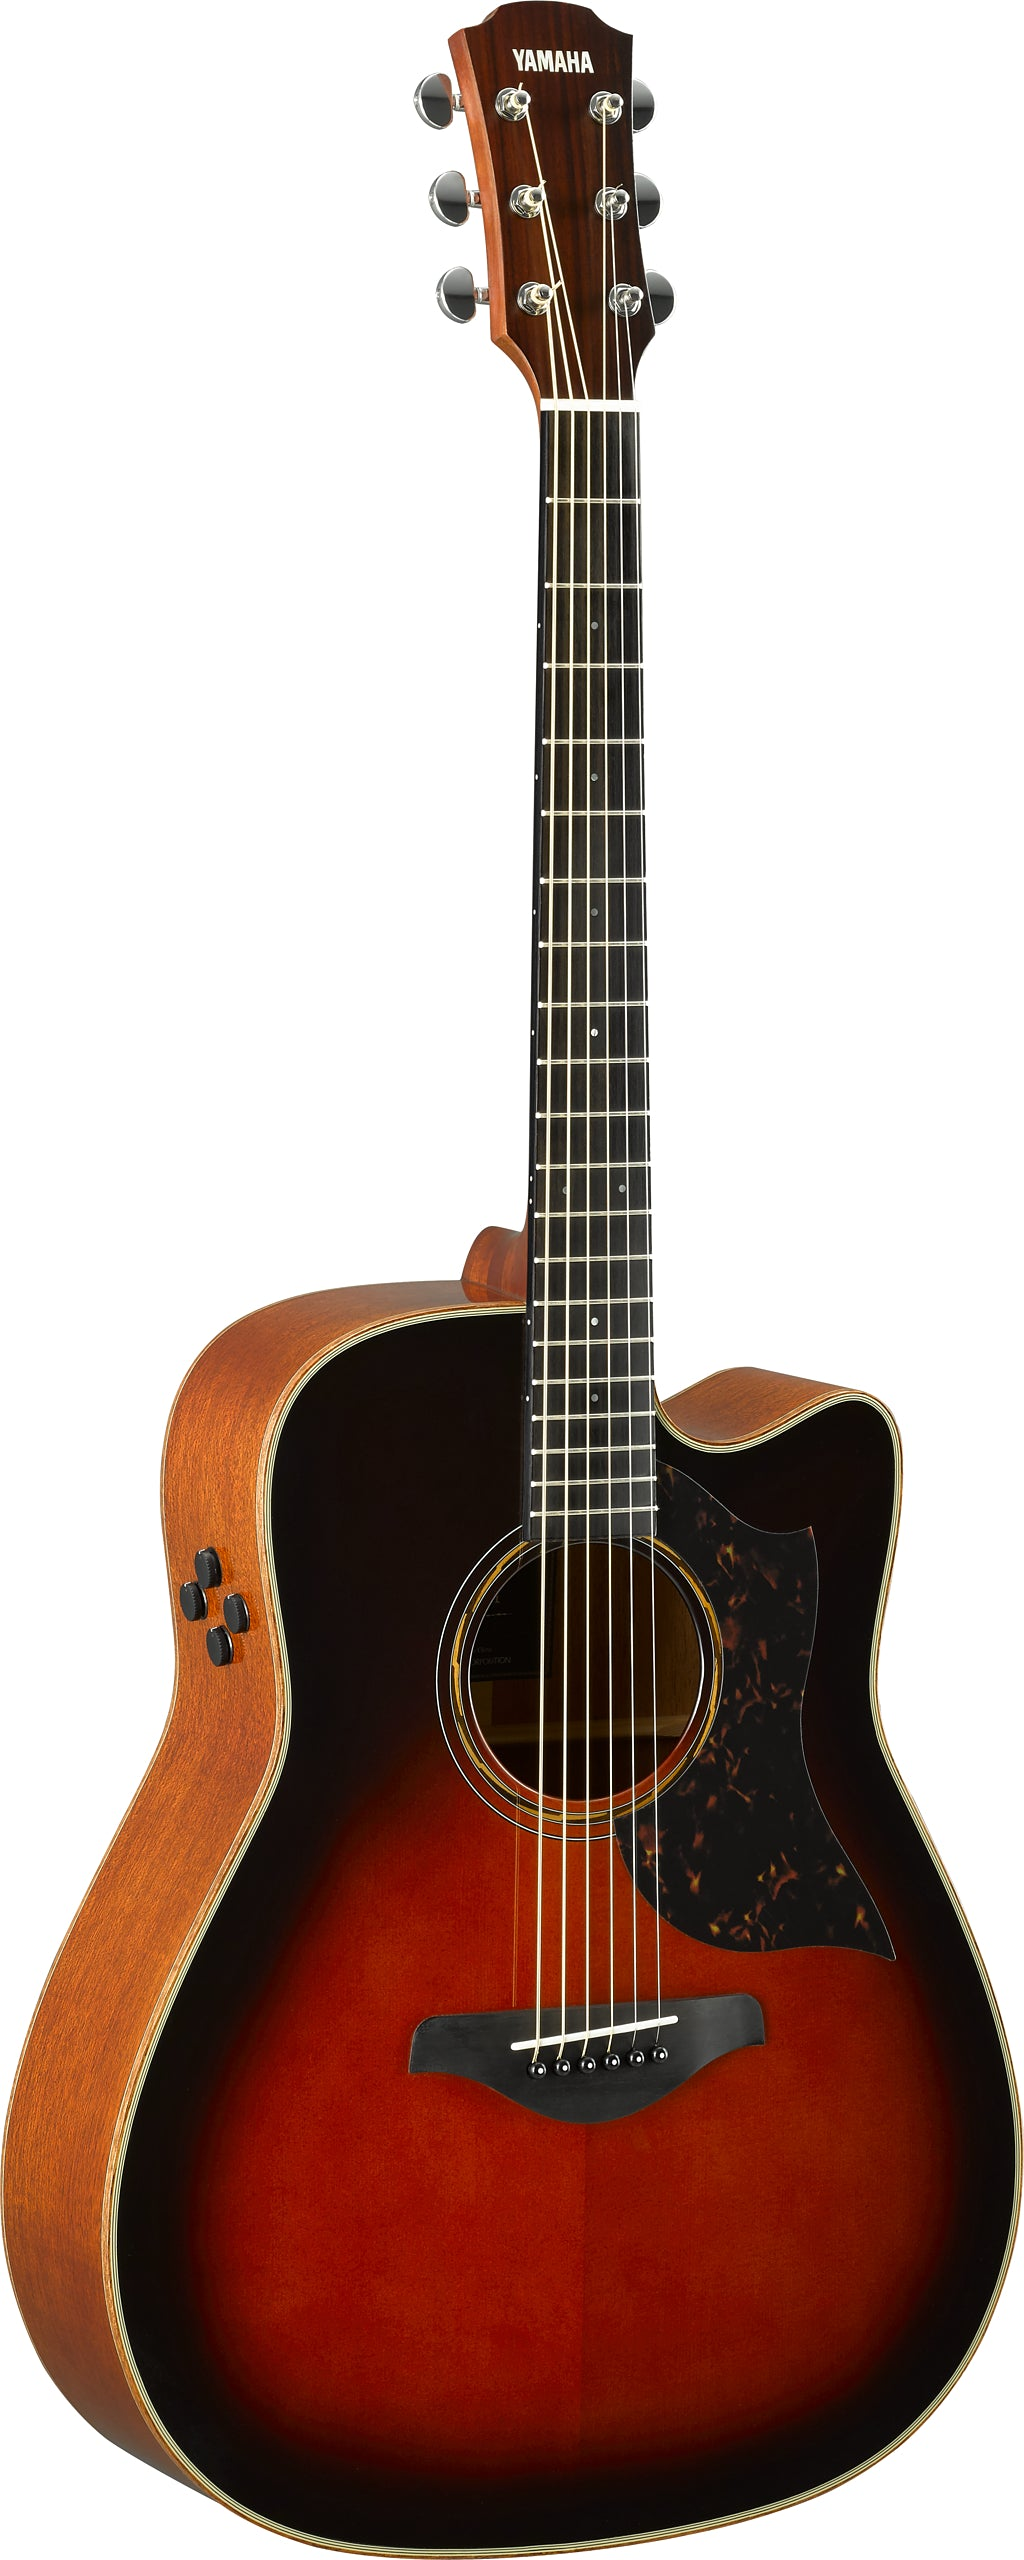 Yamaha A3M TBS Electric Acoustic Guitar - Tobacco Brown Sunburst w/Bag